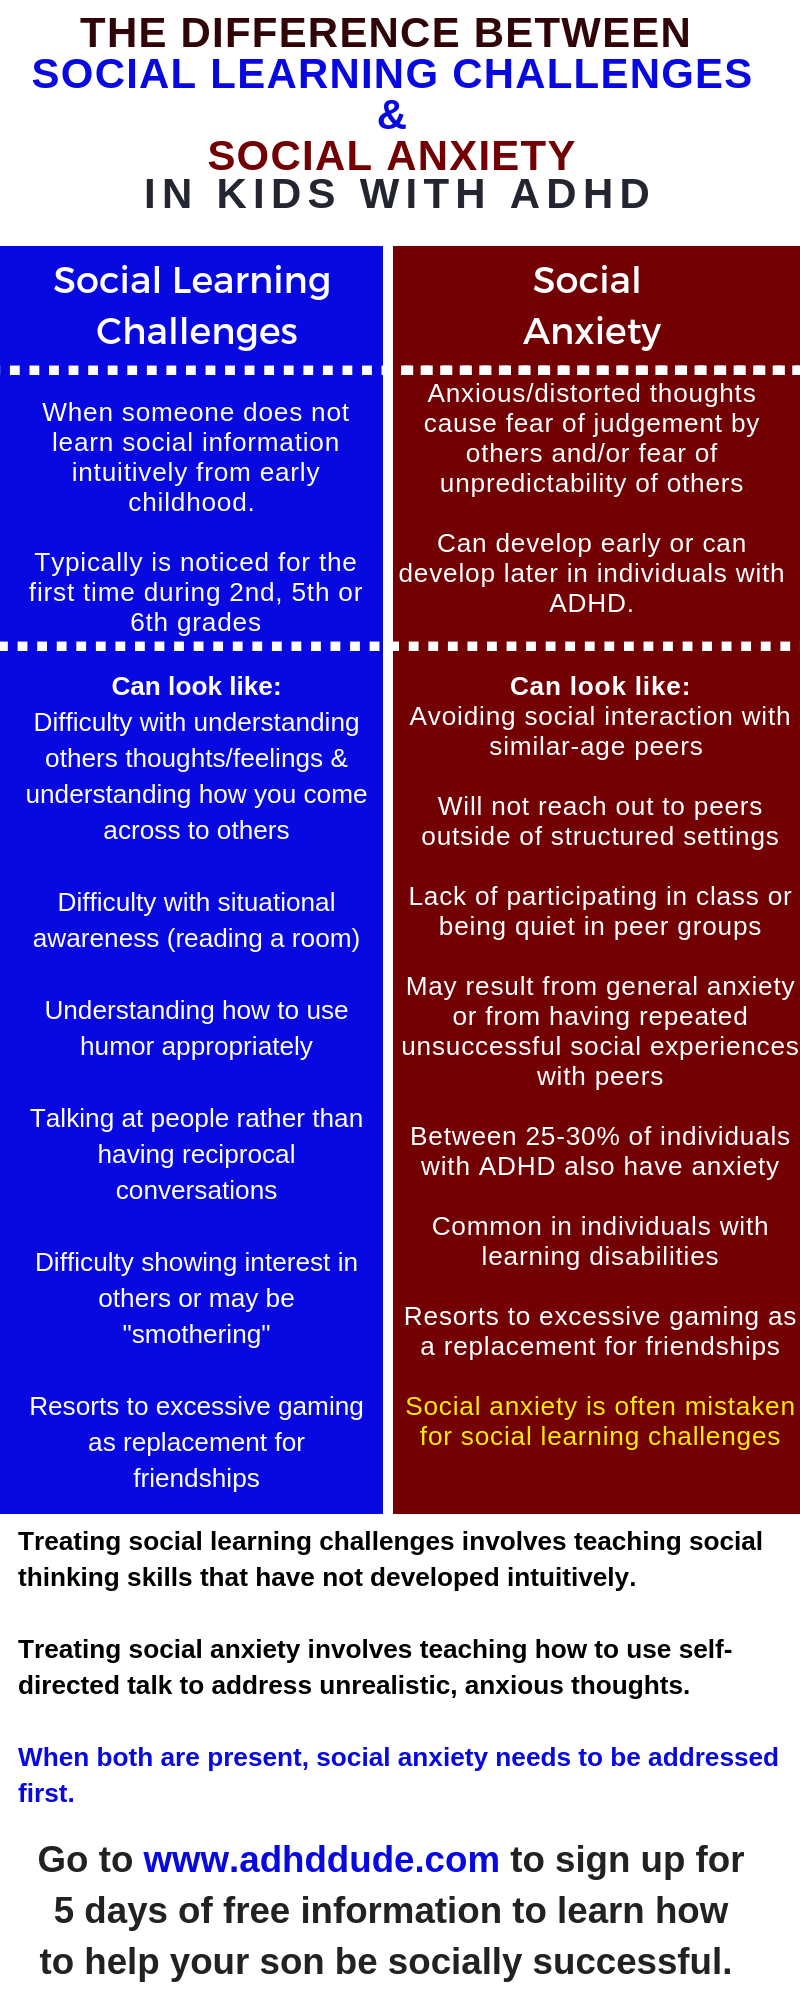 Social Challenges Of Kids With Learning >> Difference Between Social Anxiety And Social Learning Challenges In